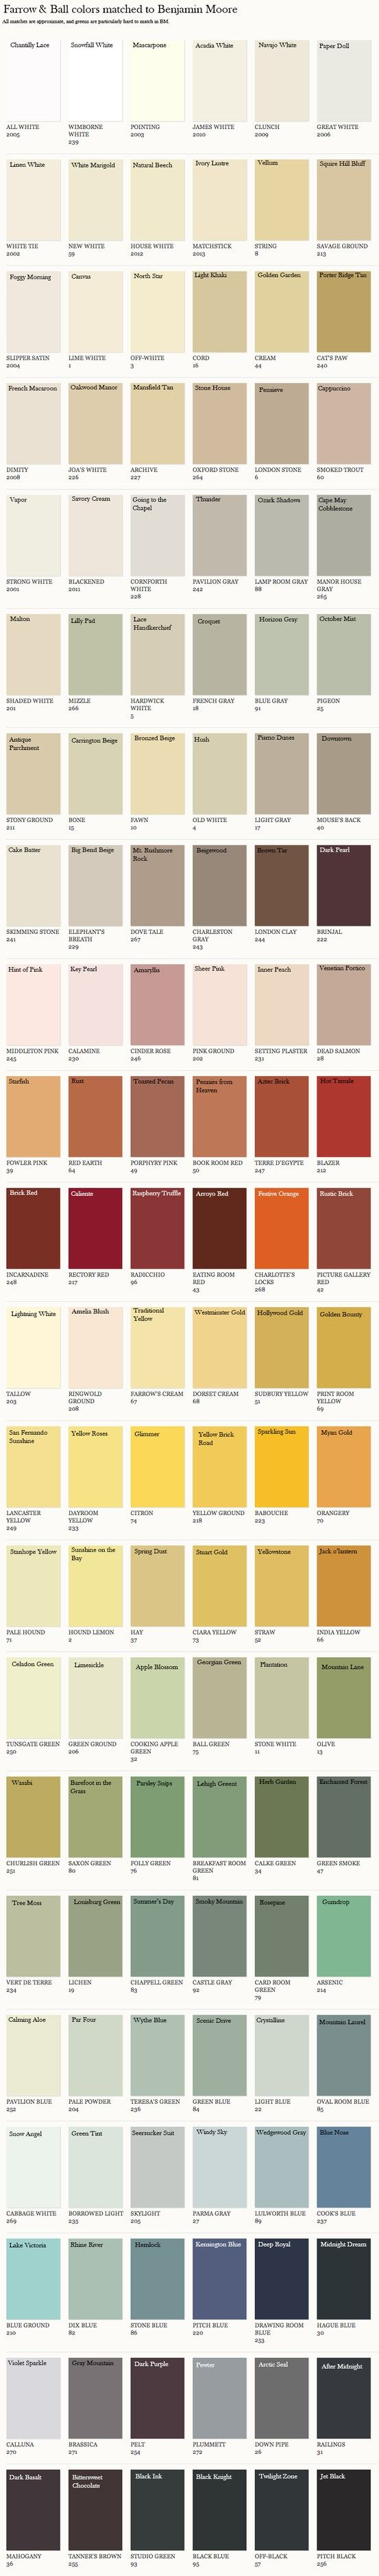 Farrow ball colors matched to benjamin moore interiors for Benjamin moore paint colors 2014